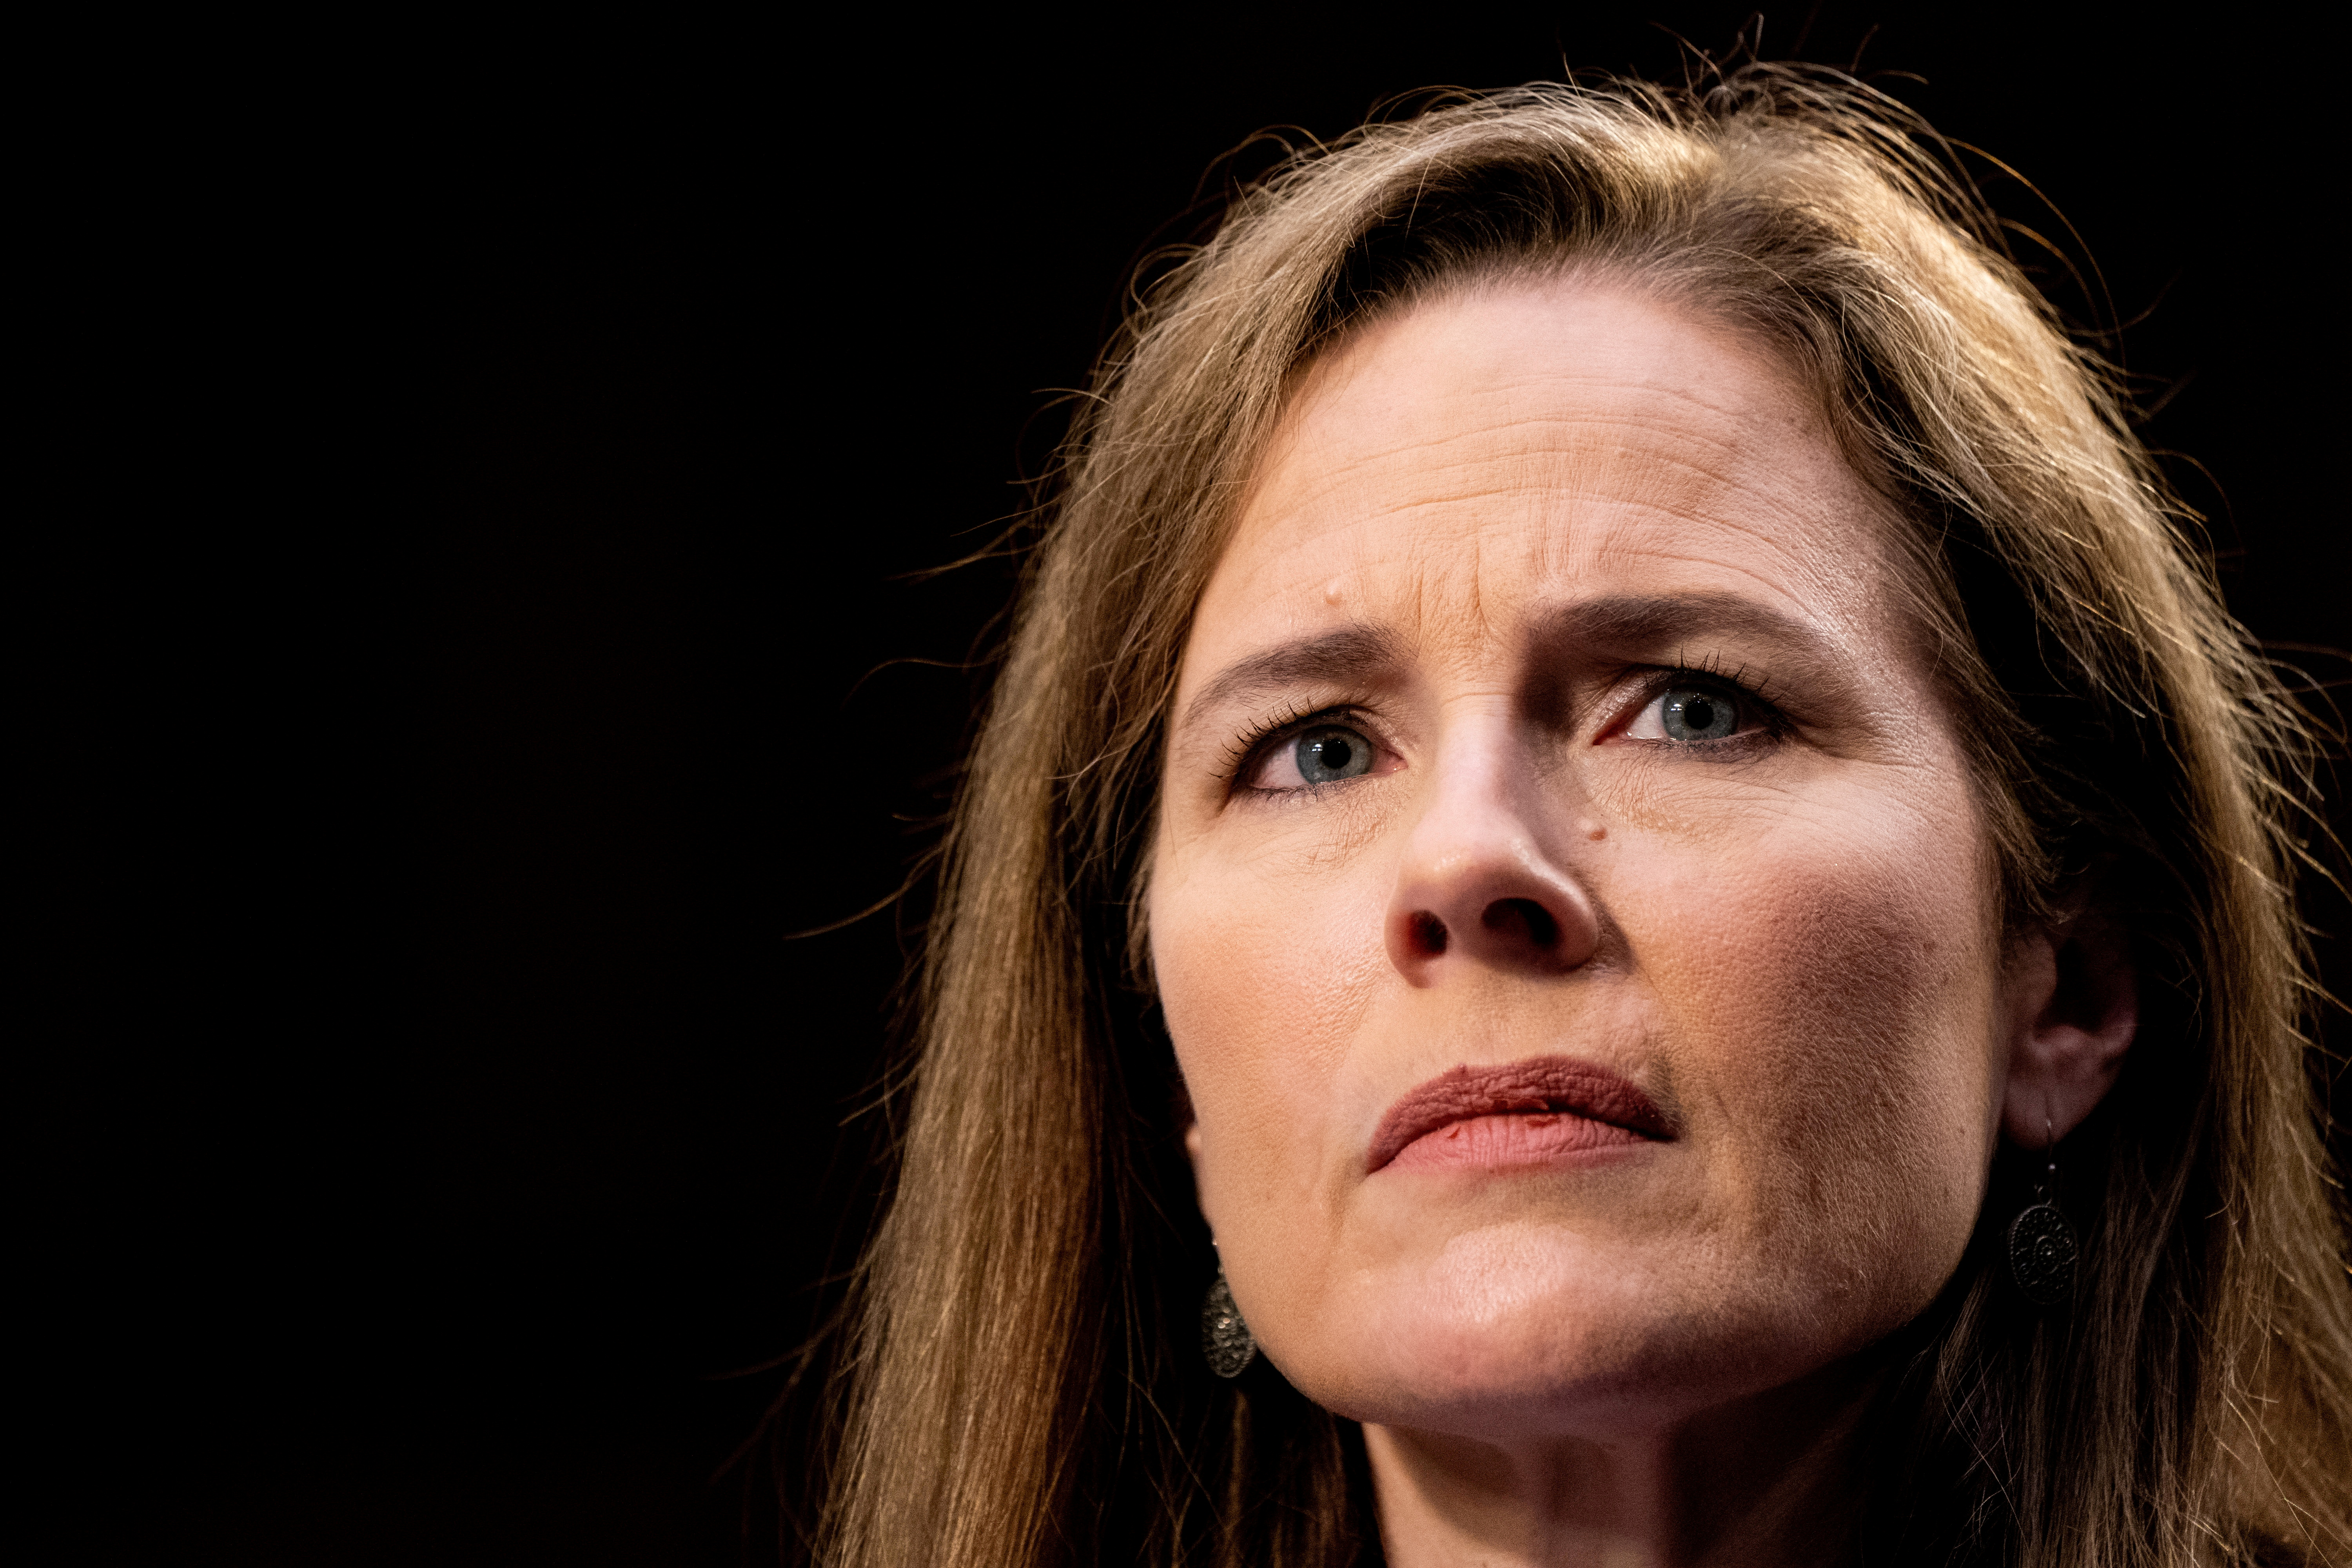 Judge Amy Coney Barrett testifies during the third day of her Senate confirmation hearing to the Supreme Court on Capitol Hill in Washington, DC, U.S., October 14, 2020. Erin Schaff/Pool via REUTERS